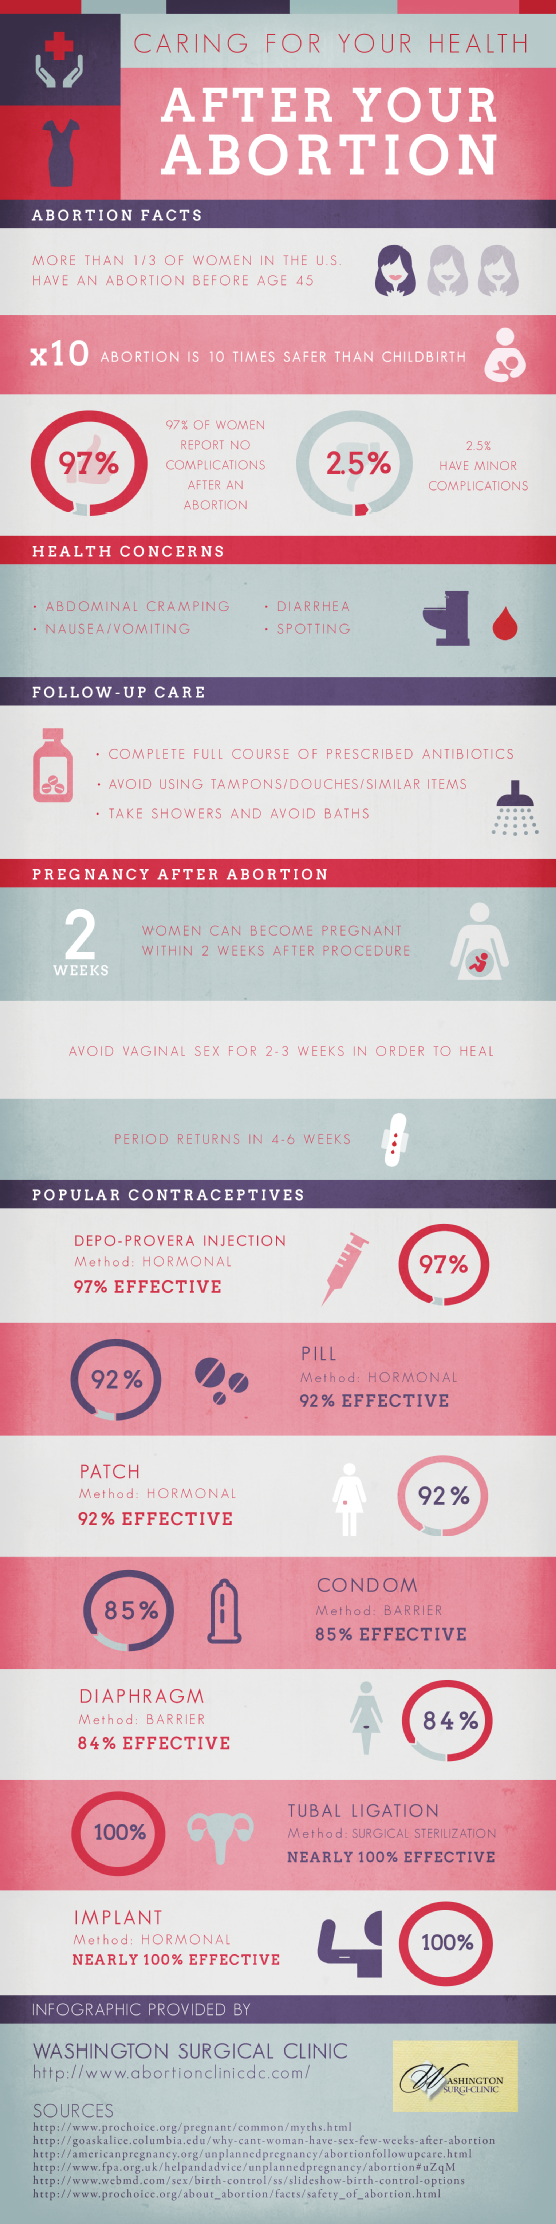 Health-After-Abortion-Infographic